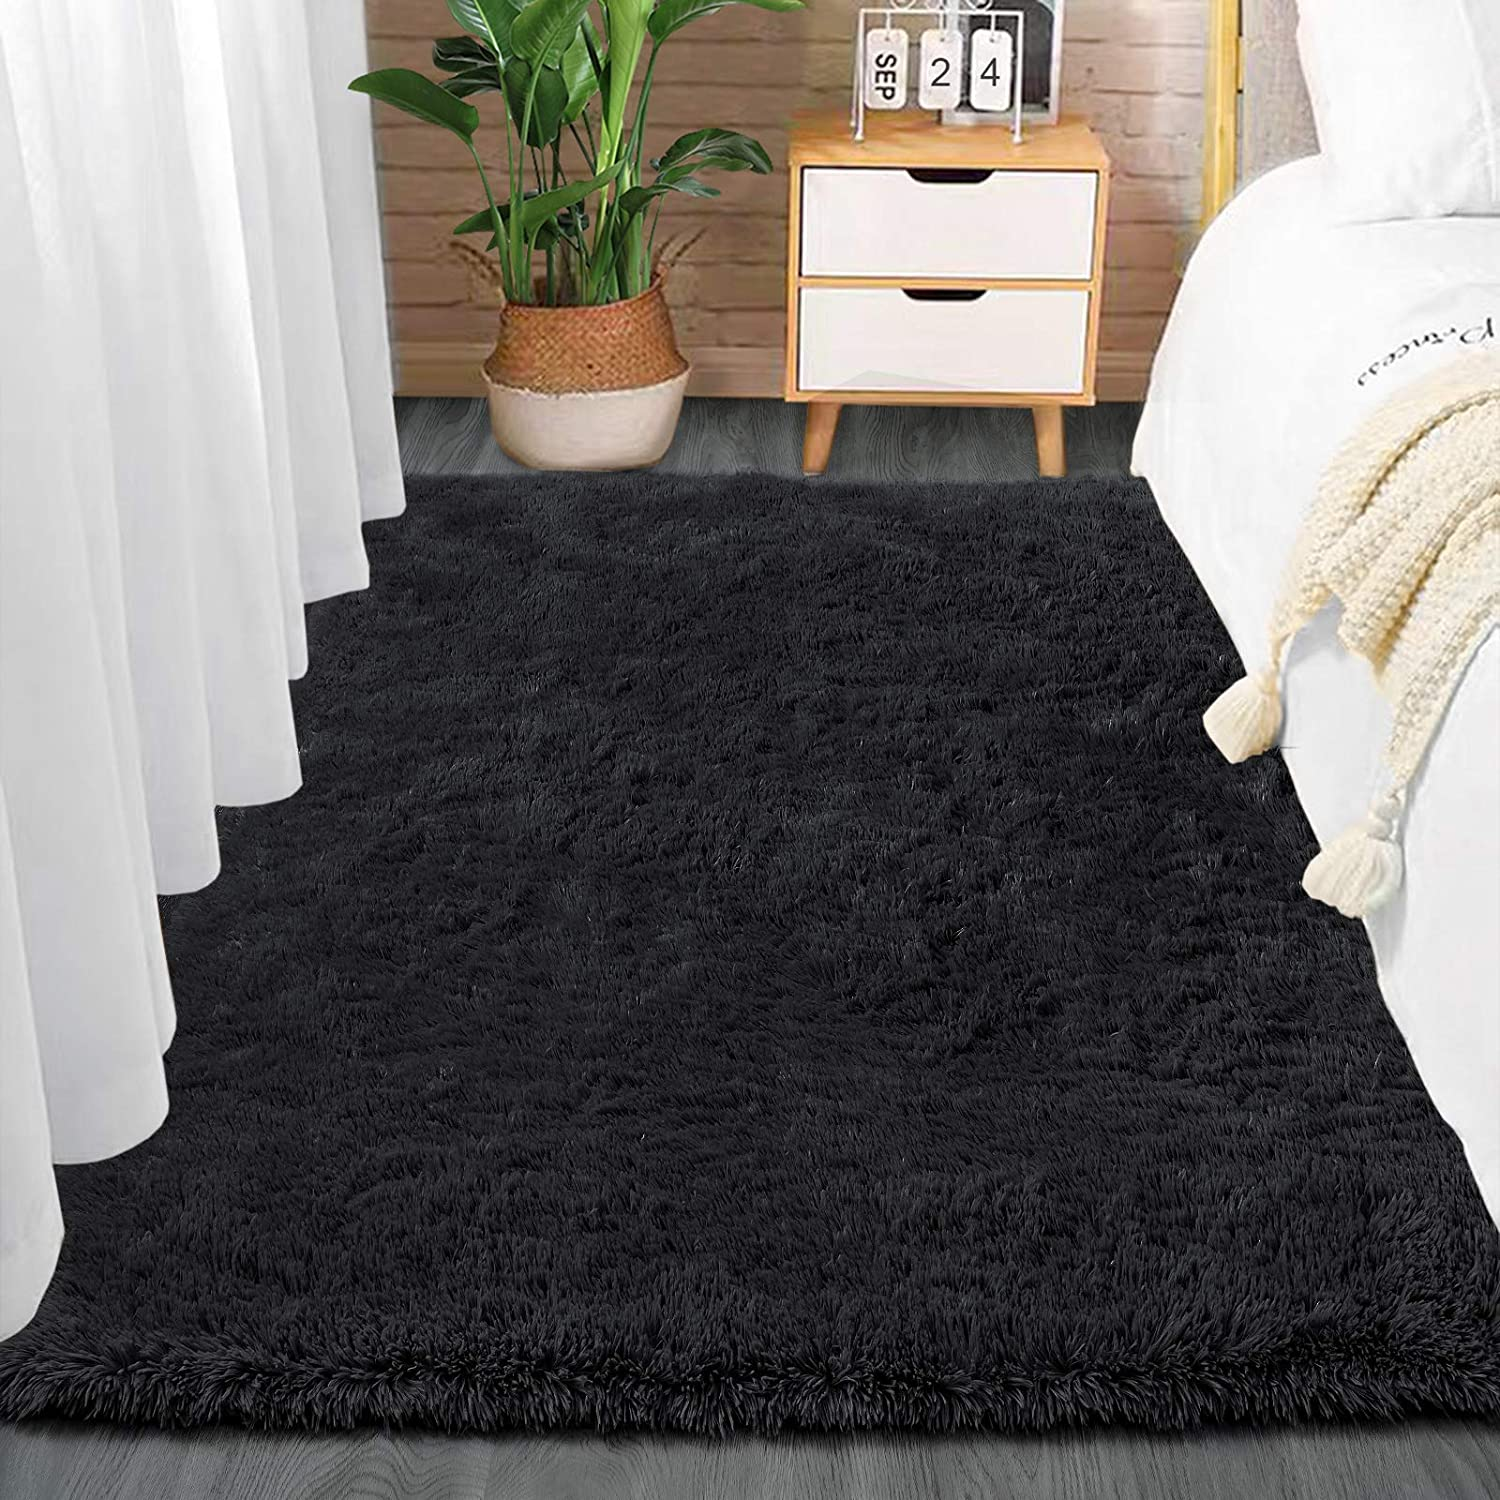 Comeet Soft Living Room Area Rugs for Bedroom Fluffy Rugs for Kids Room, Floor Modern Indoor Shaggy Plush Carpets, Home Decor Fuzzy Comfy Nursery Baby Boys Abstract Accent, Black Shag Rug 3x5 Feet